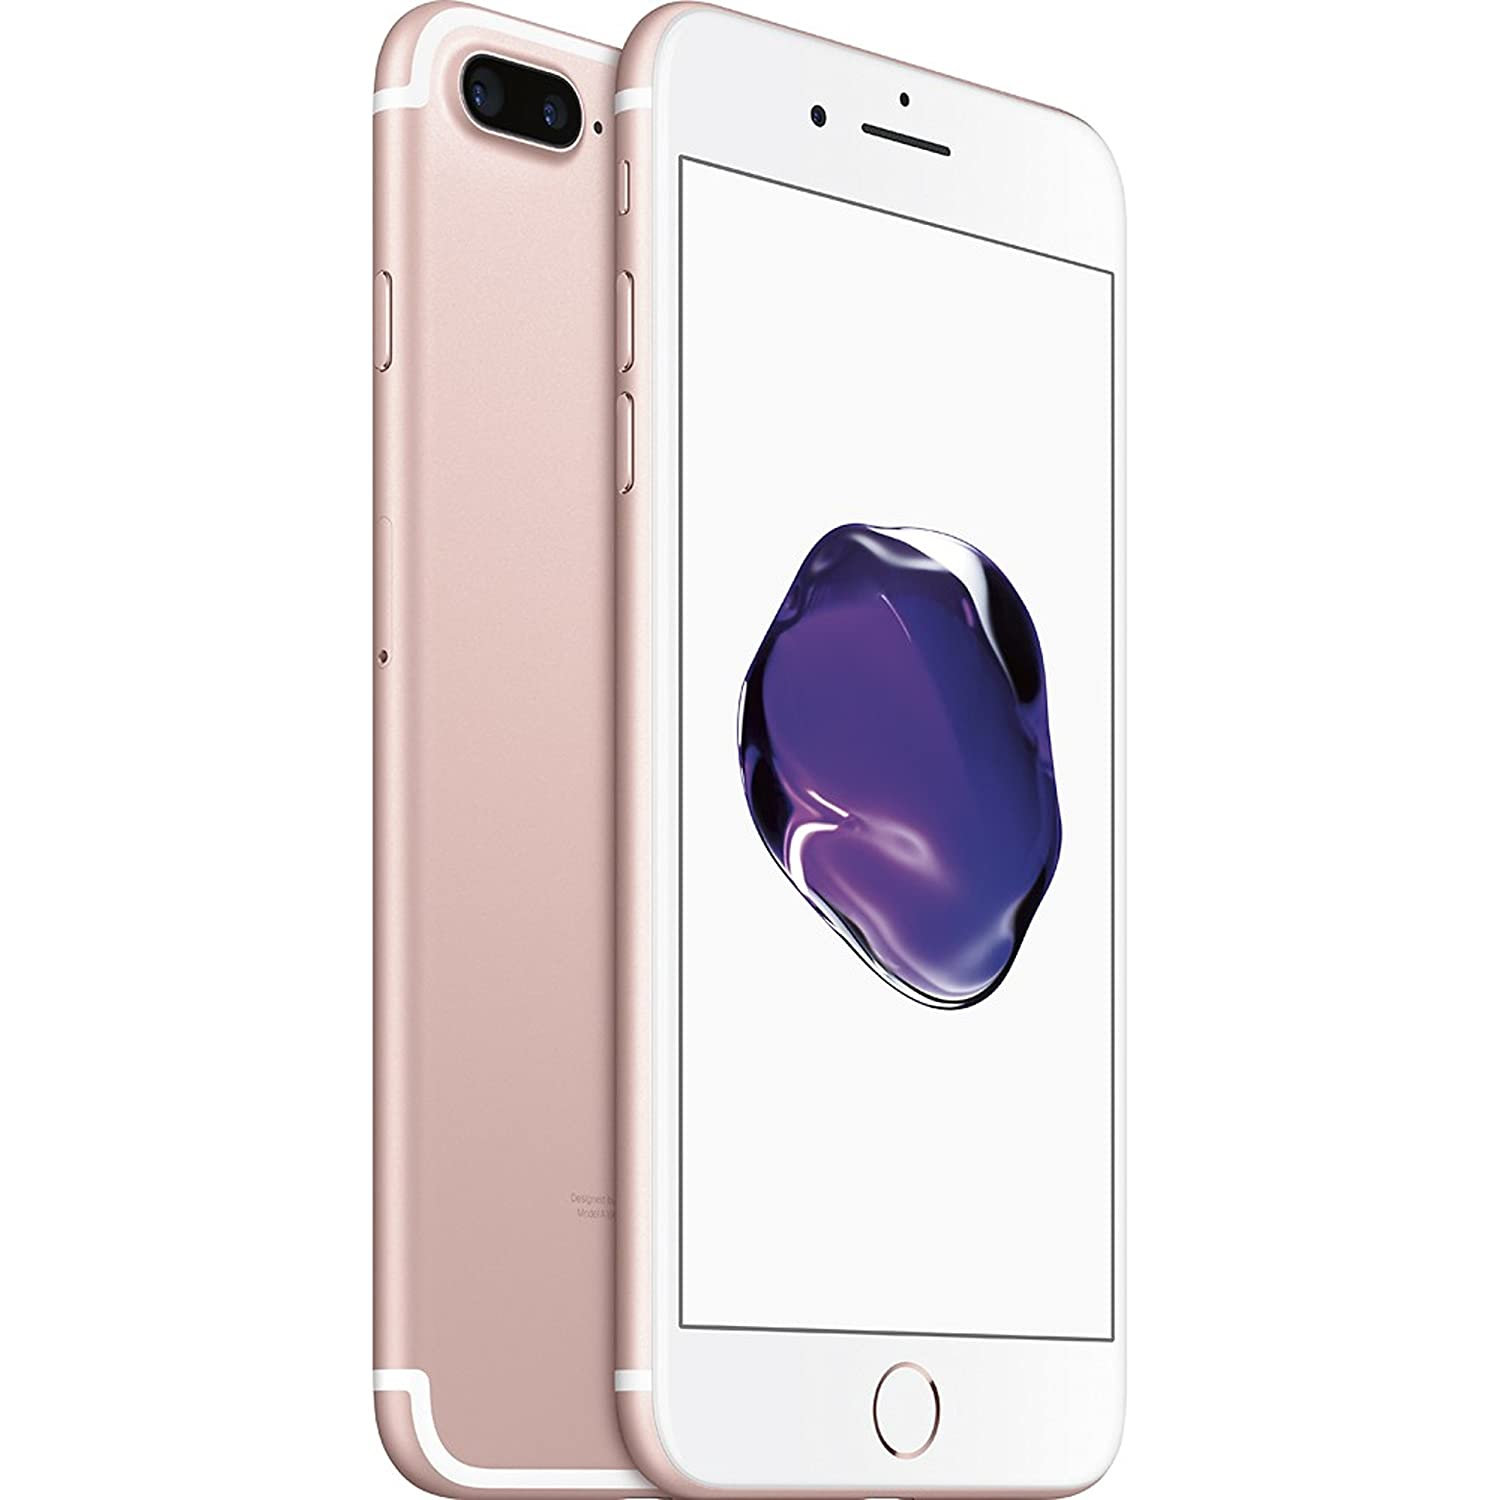 Apple iPhone 7 Plus, GSM Unlocked, 32GB - Rose Gold (Renewed)